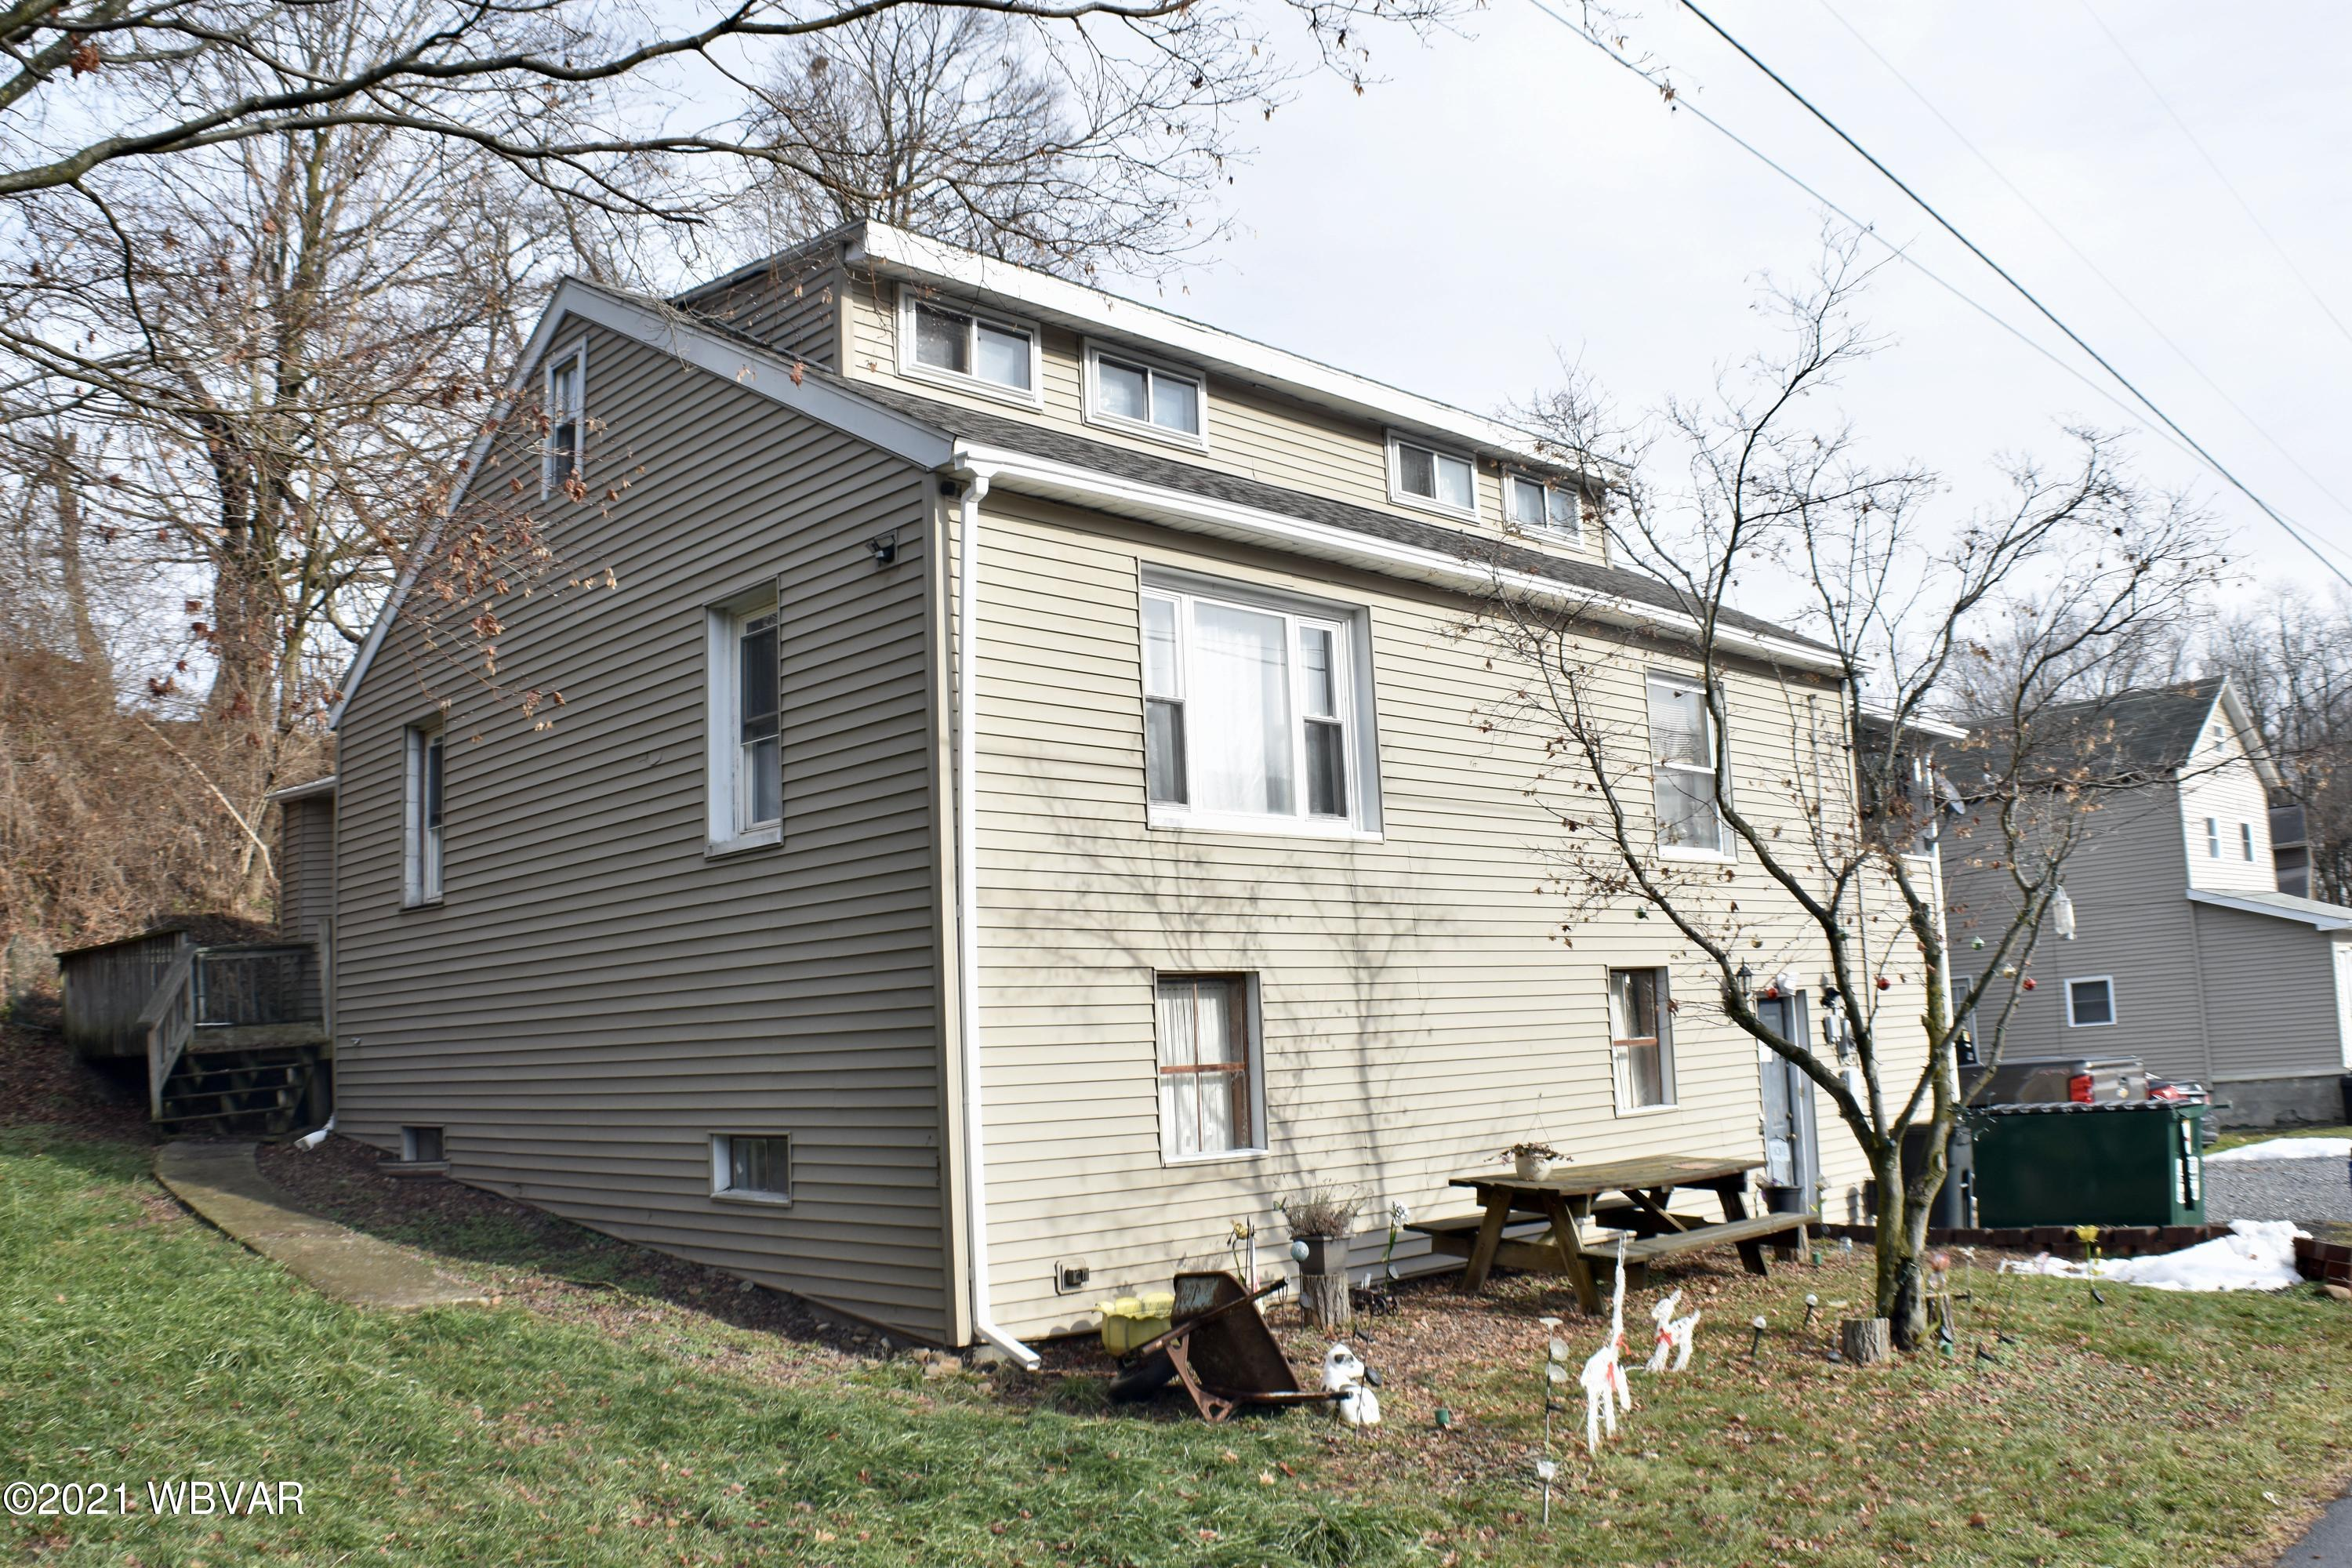 173 ALLEGHENY STREET, Lock Haven, PA 17745, 4 Bedrooms Bedrooms, ,1 BathroomBathrooms,Residential,For sale,ALLEGHENY,WB-91762